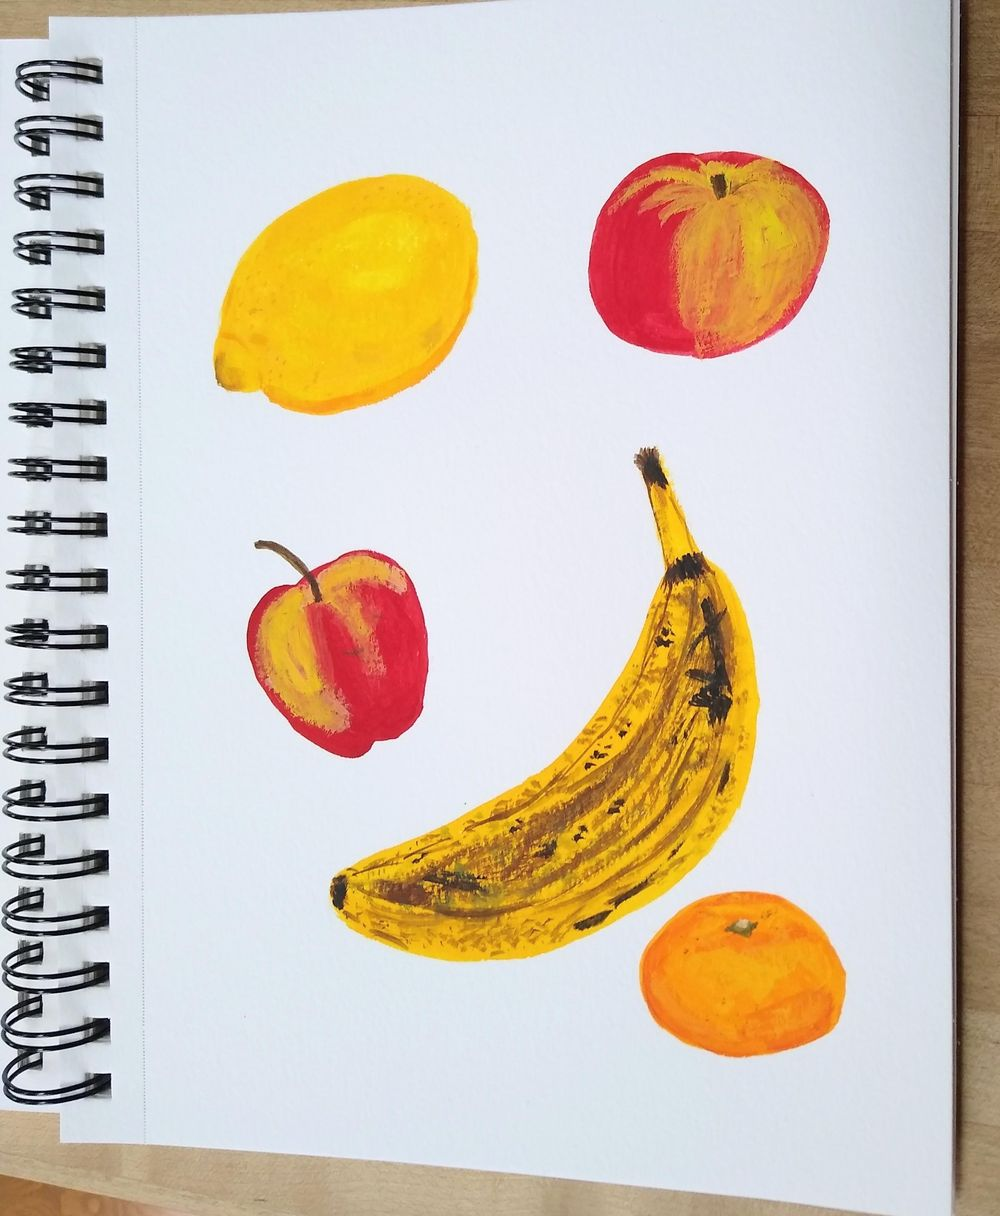 old banana & other fruit - image 1 - student project